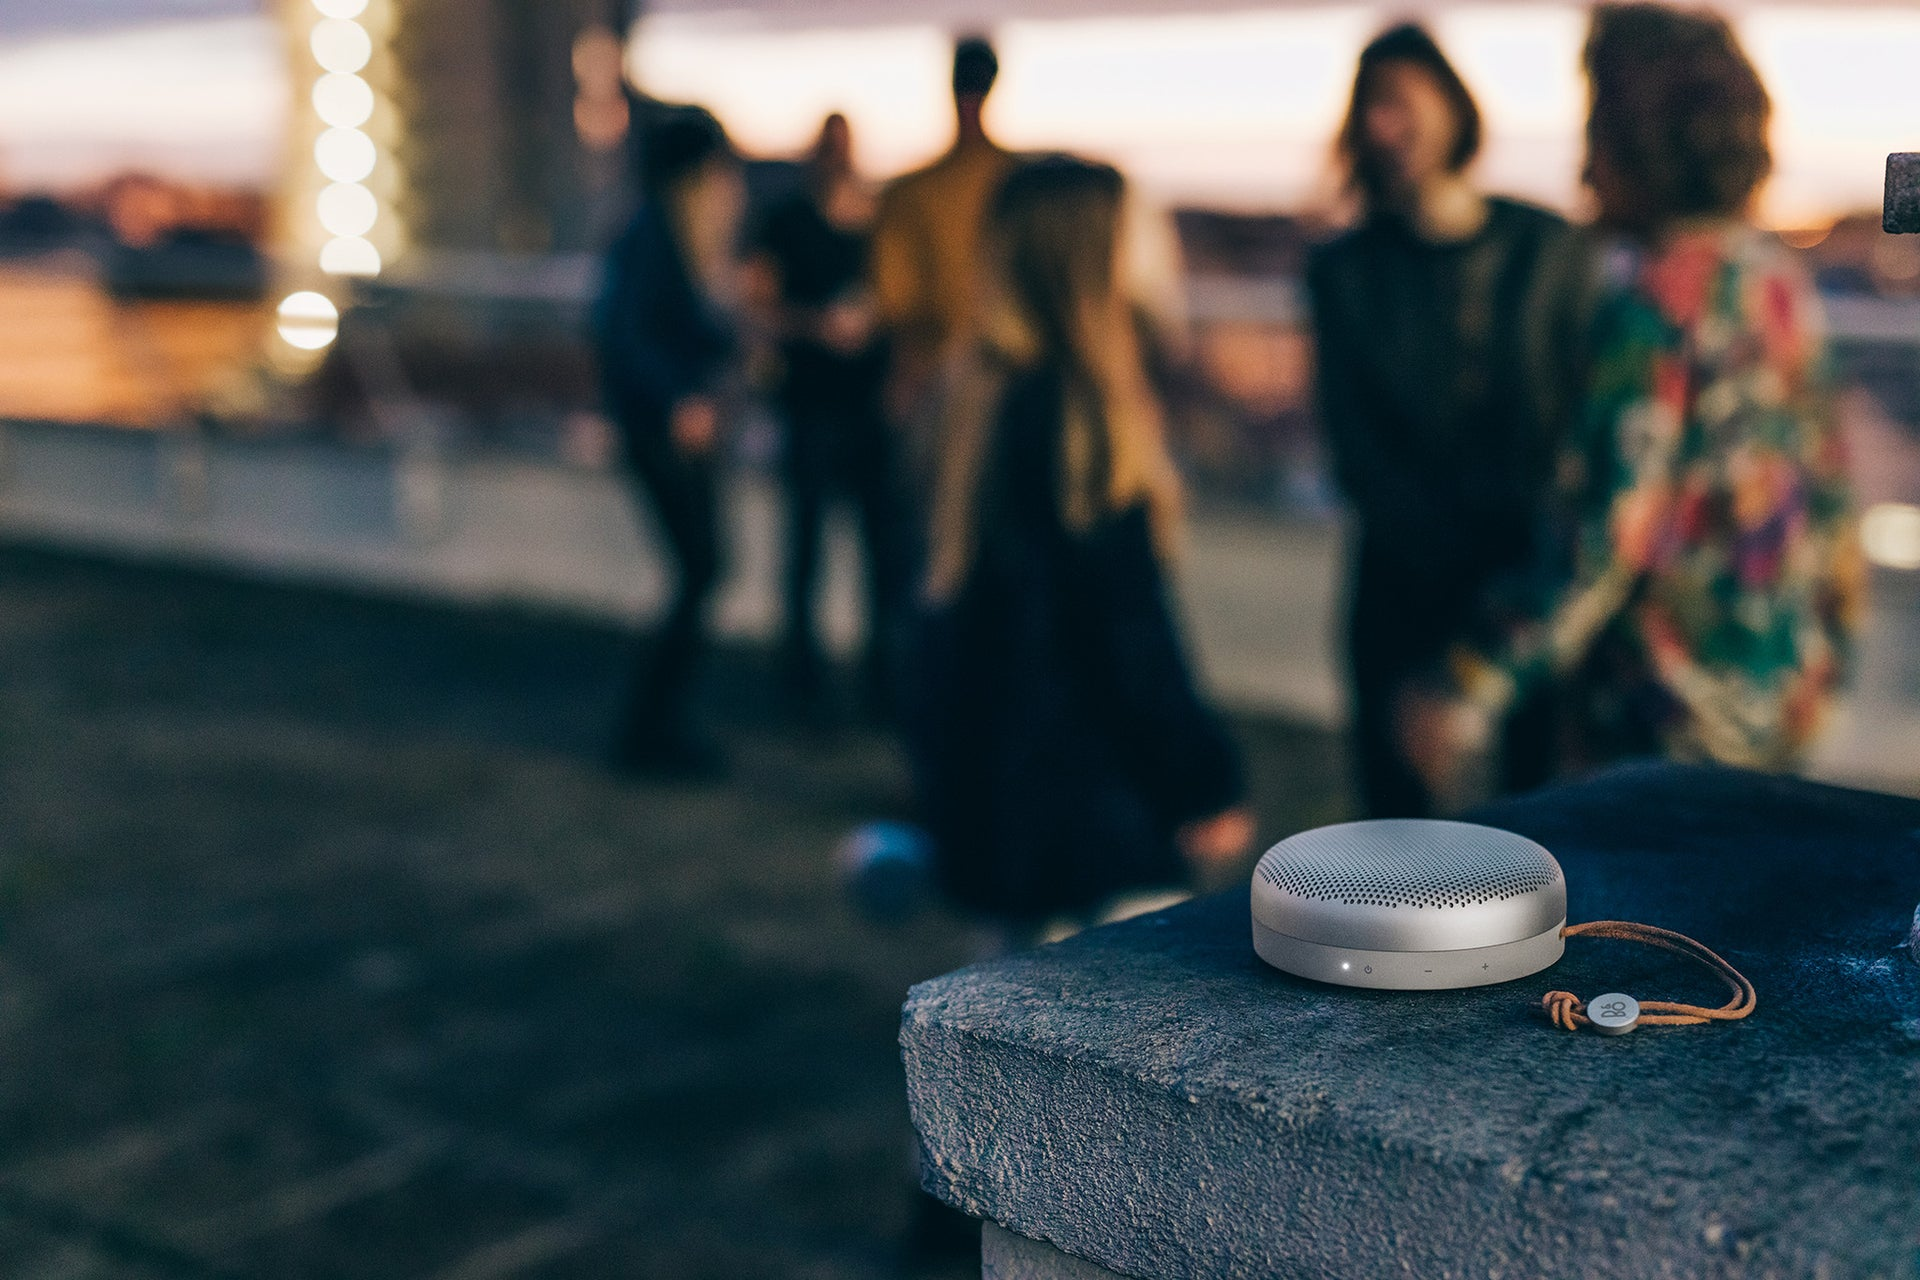 Beoplay A1 Bluetooth Portable Speaker